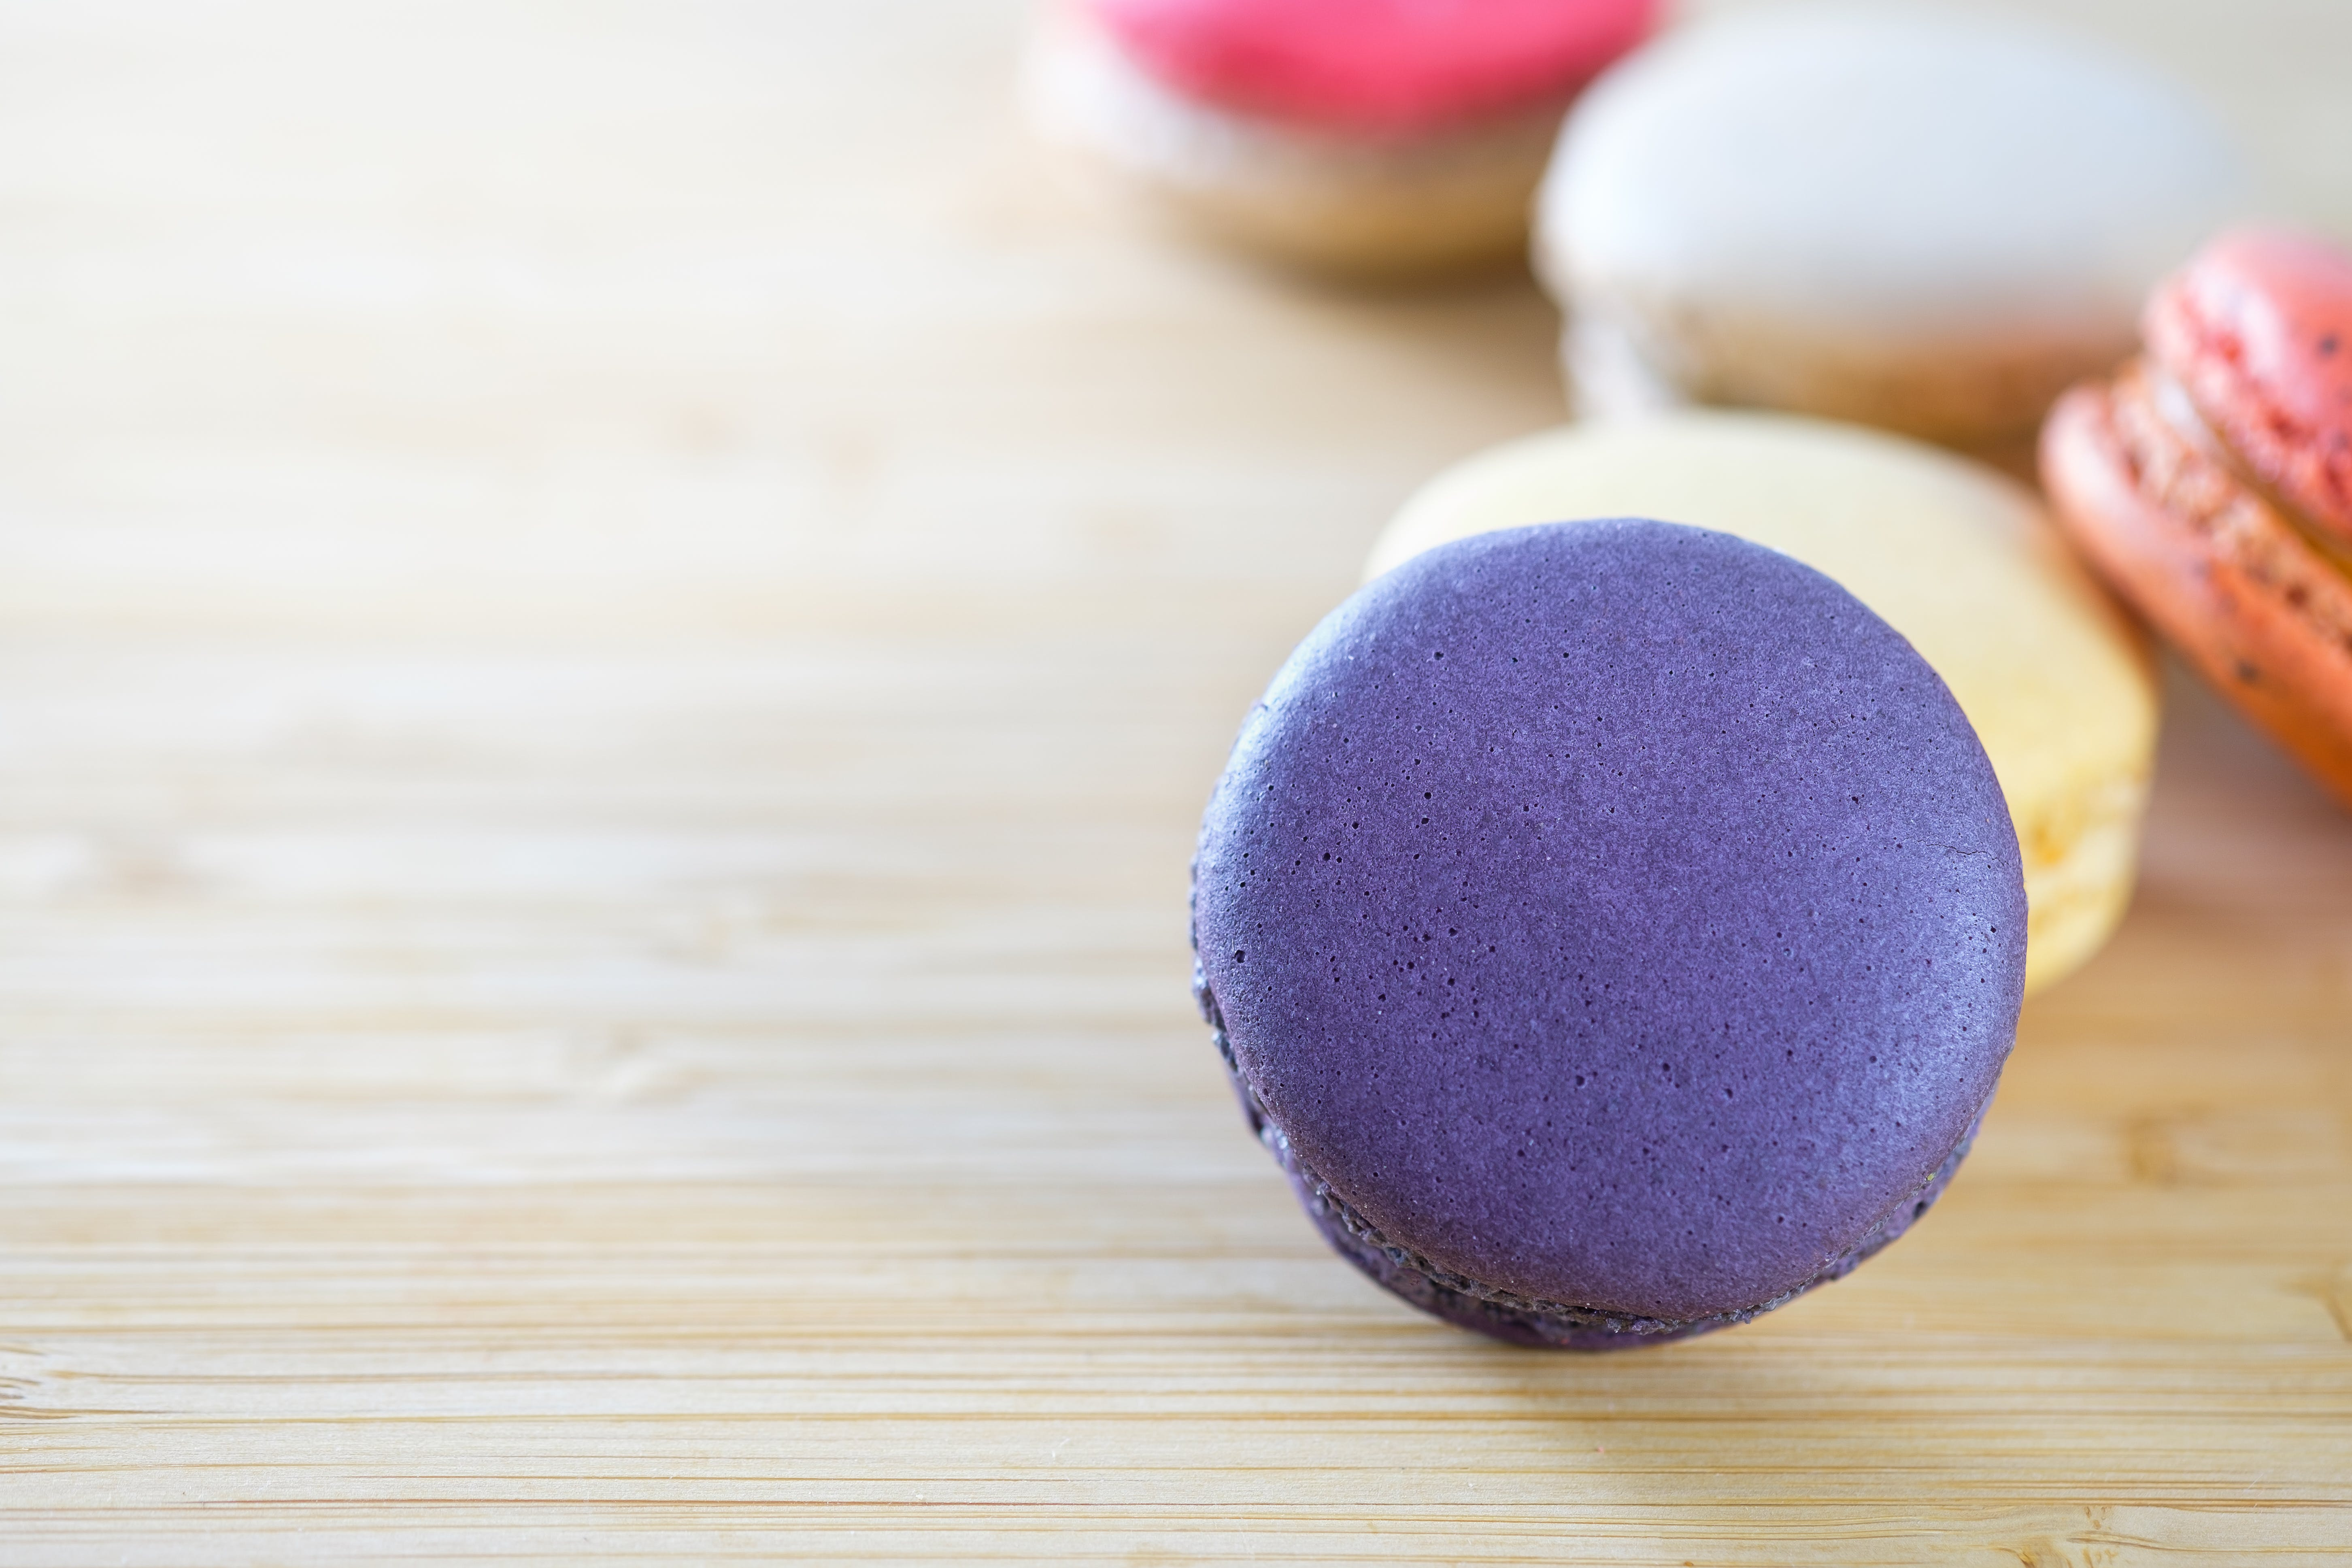 Photo of Macarons on Brown Wooden Surface